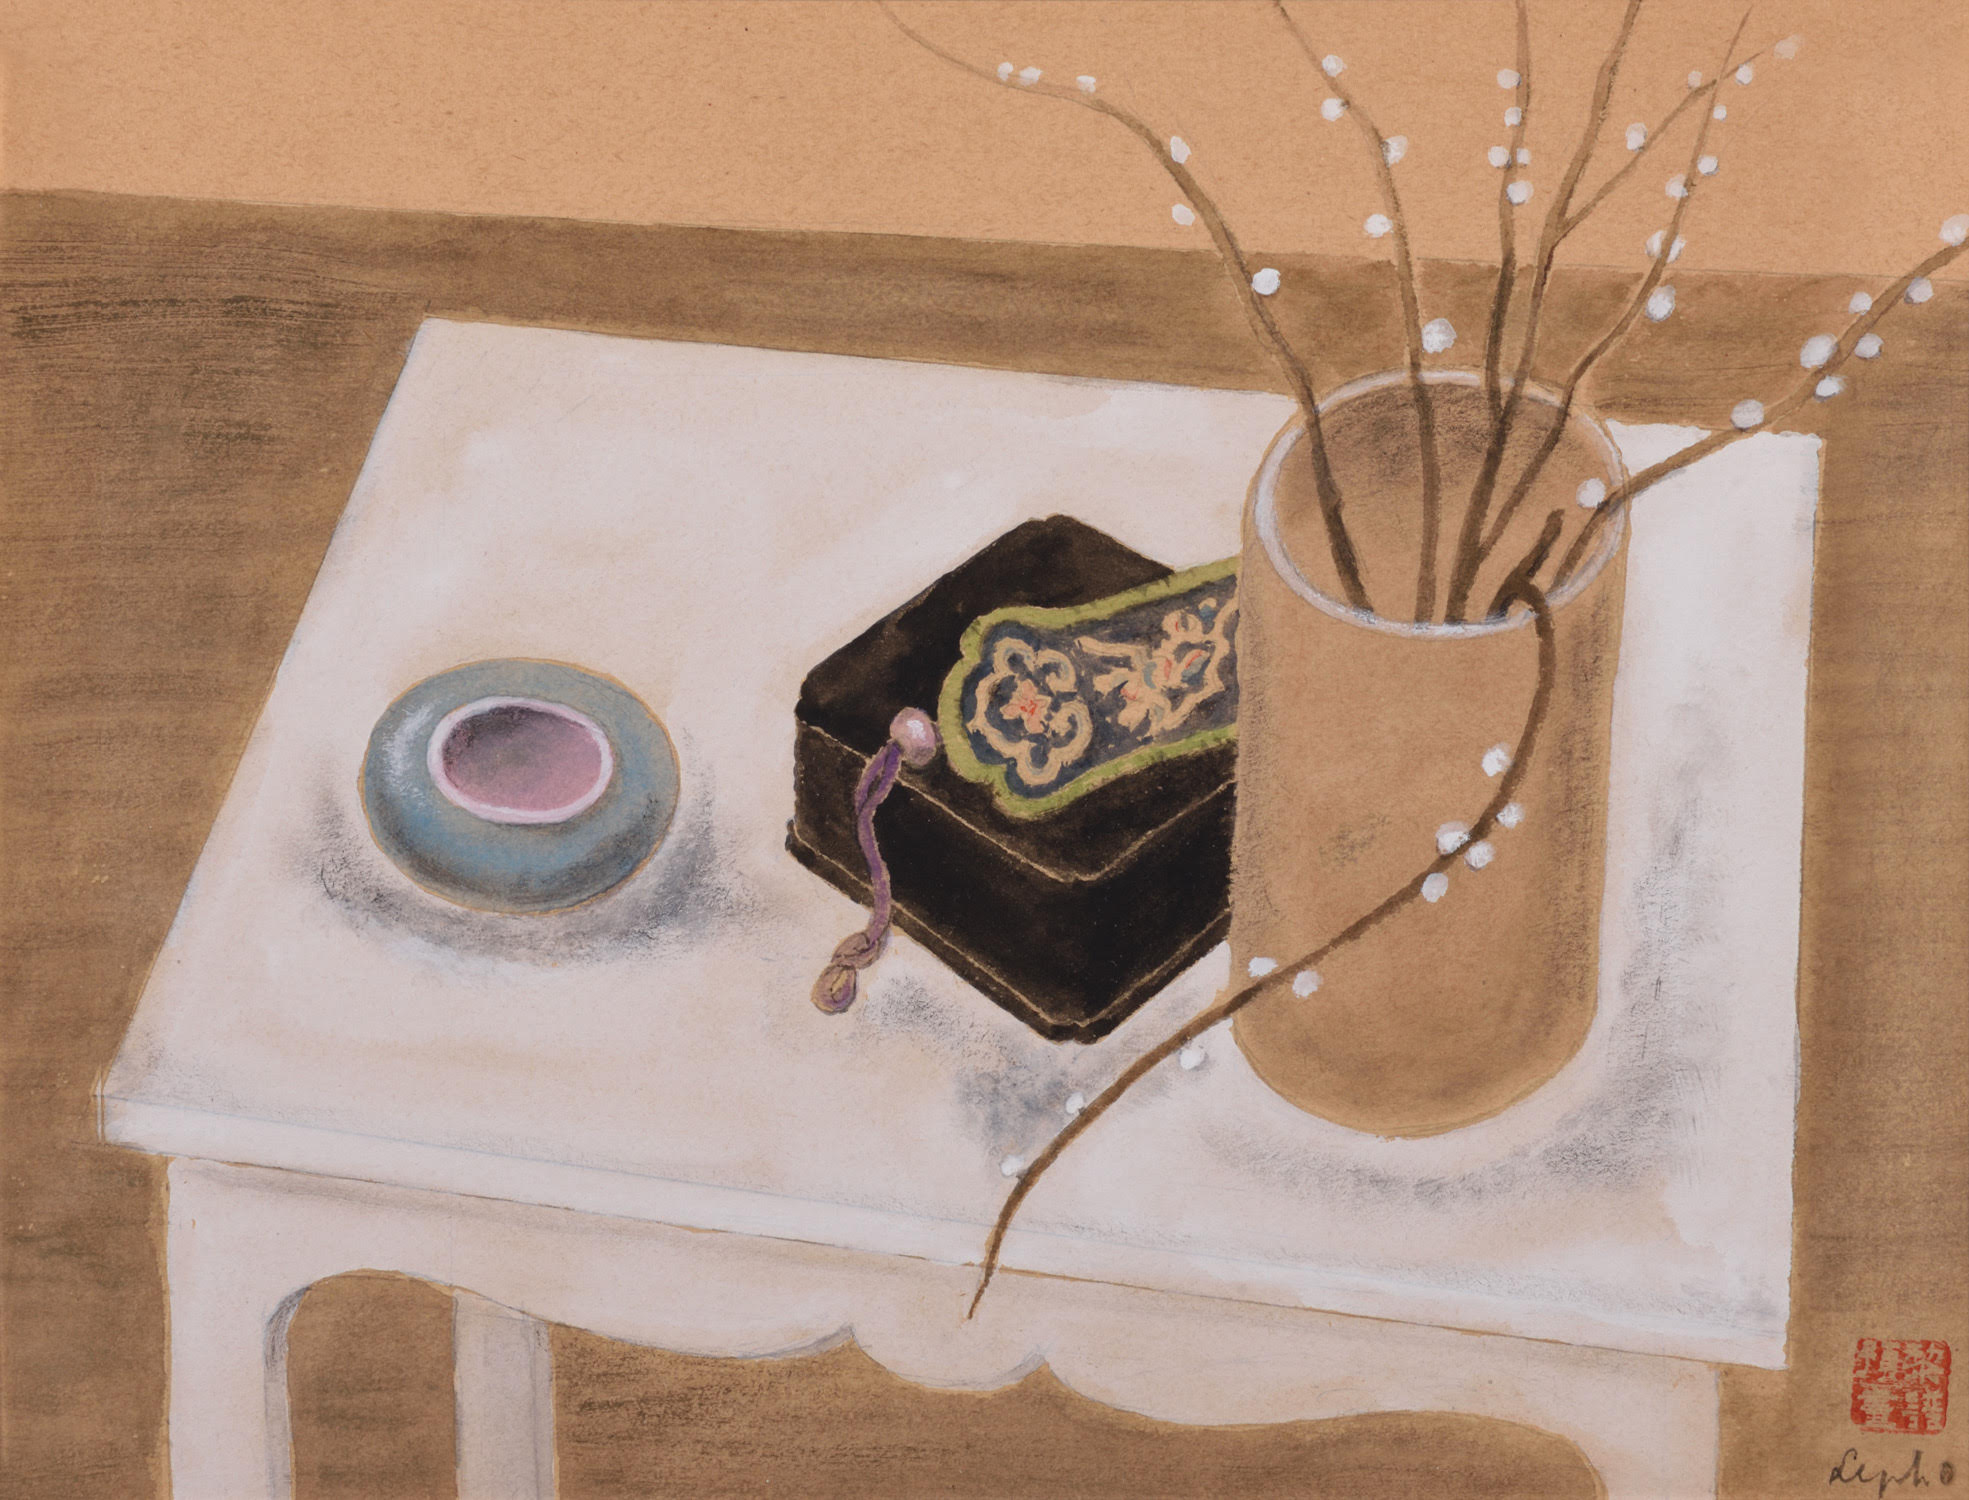 Le Pho, Nature Morte au Saule Blanc (Still Life with Pussy Willow), ink and gouache on board, 23 x 31 cm, c. 1937-1938